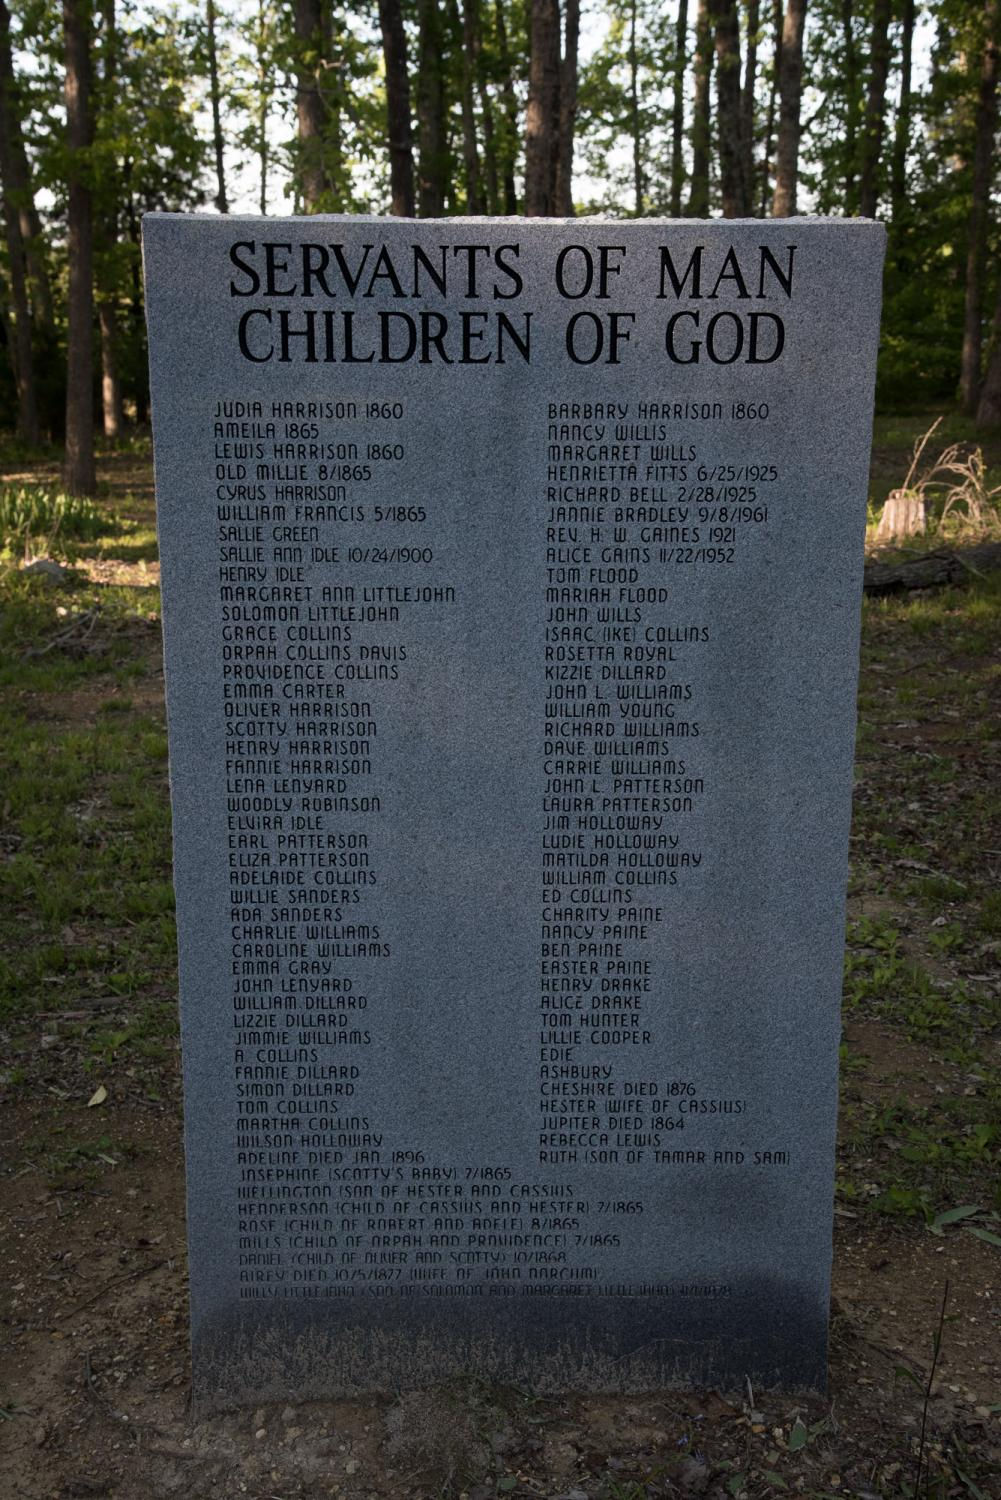 Servants of Man, Children of God: Marker at cemetery near Faunsdale Plantation, Alabama